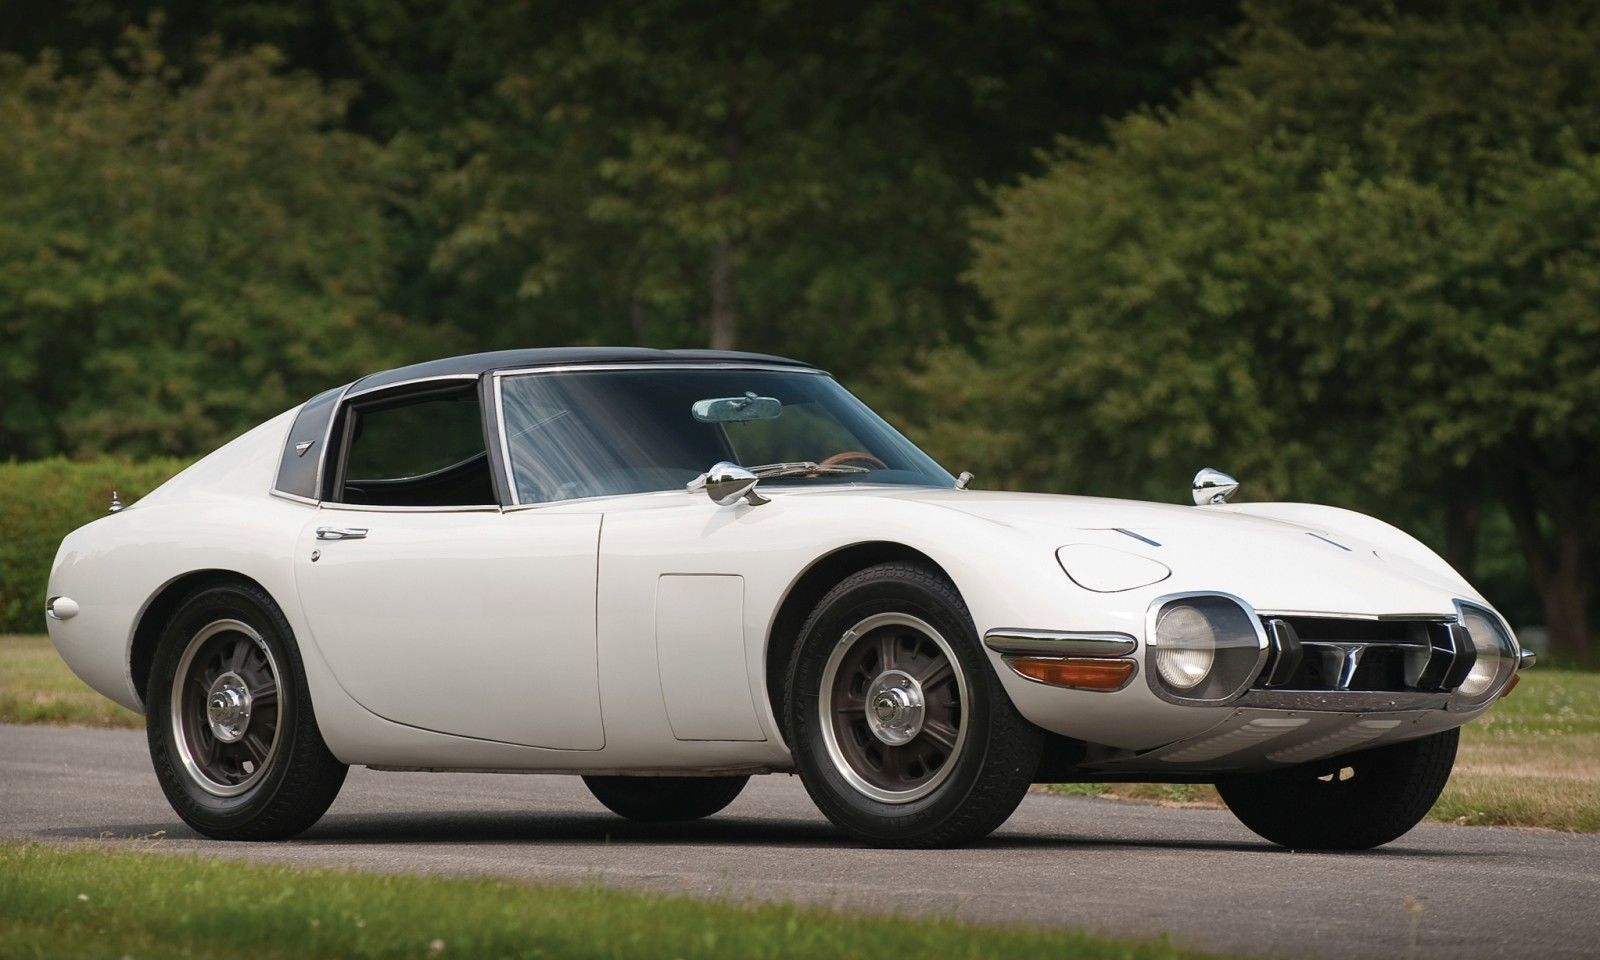 1966 Toyota 2000GT Targa - Bond Movie Car Idea Realized, But Earned Only $200k in RM Auctions London 2010 28